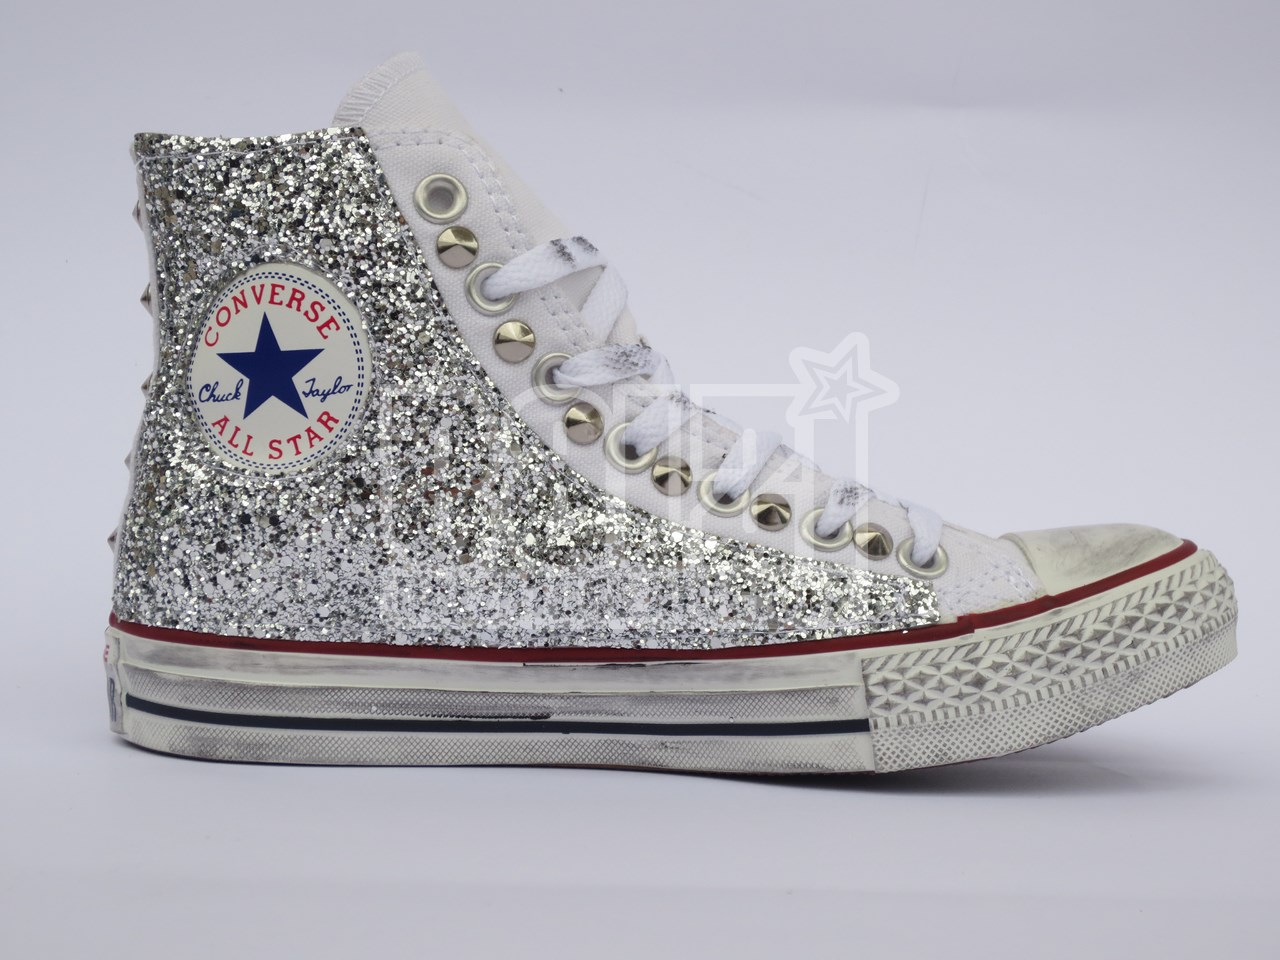 Alta qualit Converse All Star glitter argento